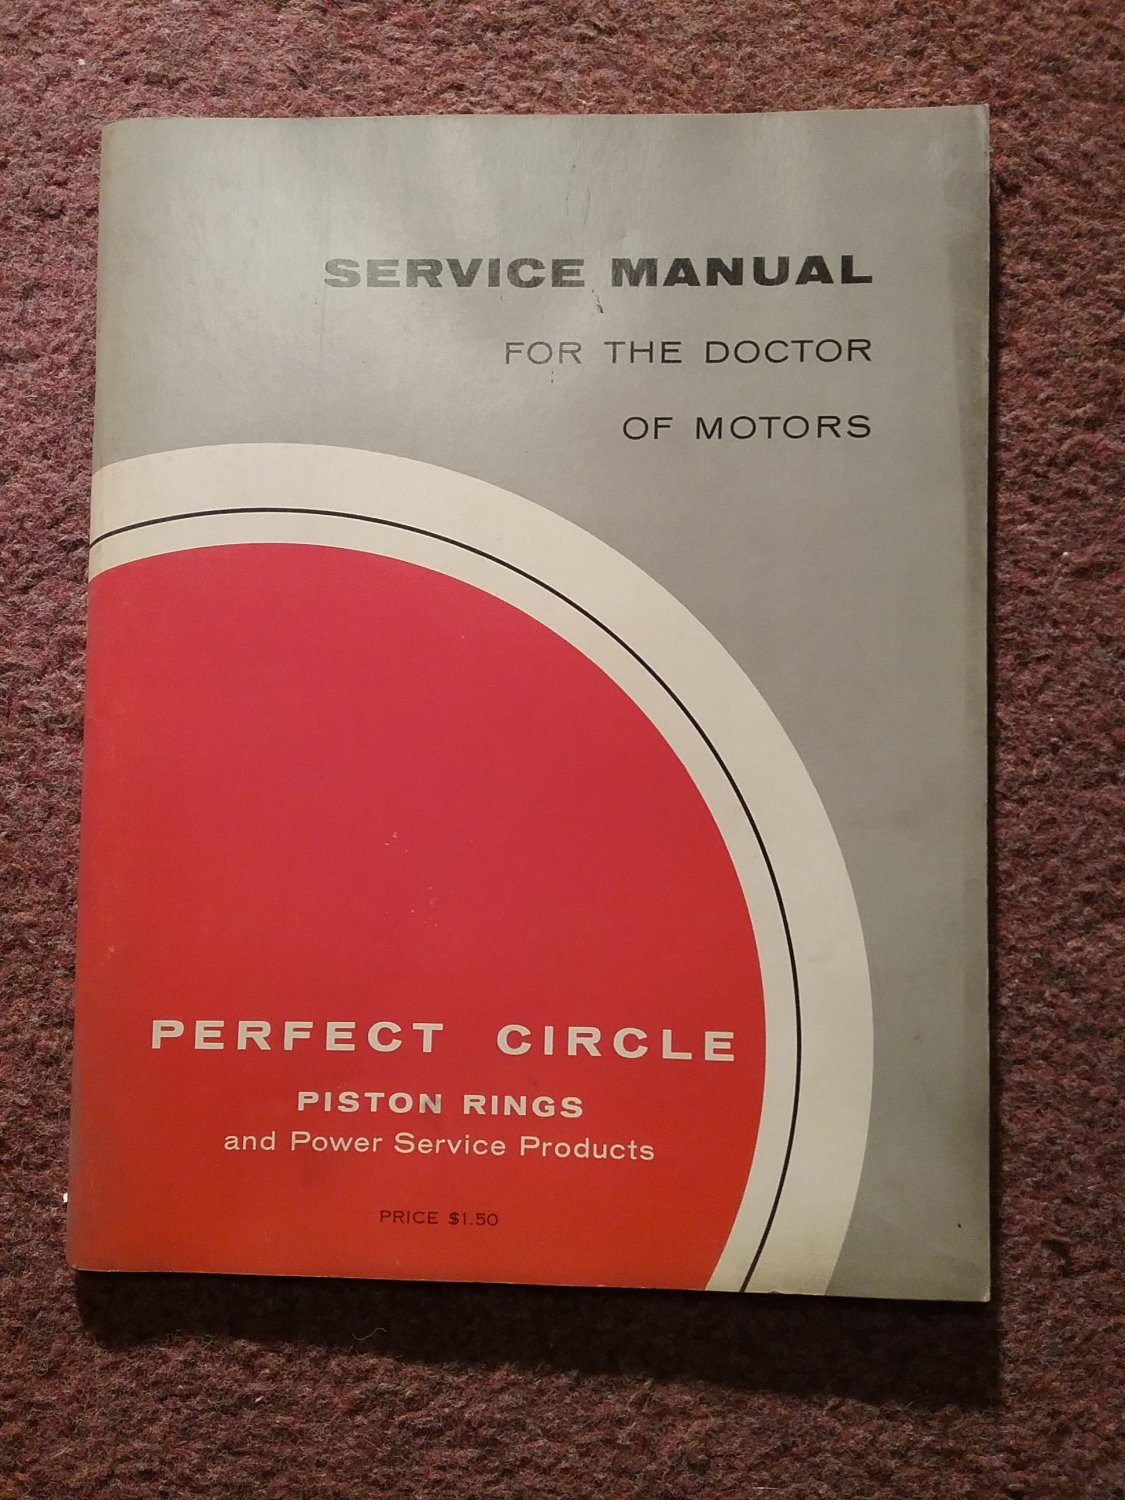 1963 Service Manual for the doctor of Motors, Piston Rings and Power Service 070716125